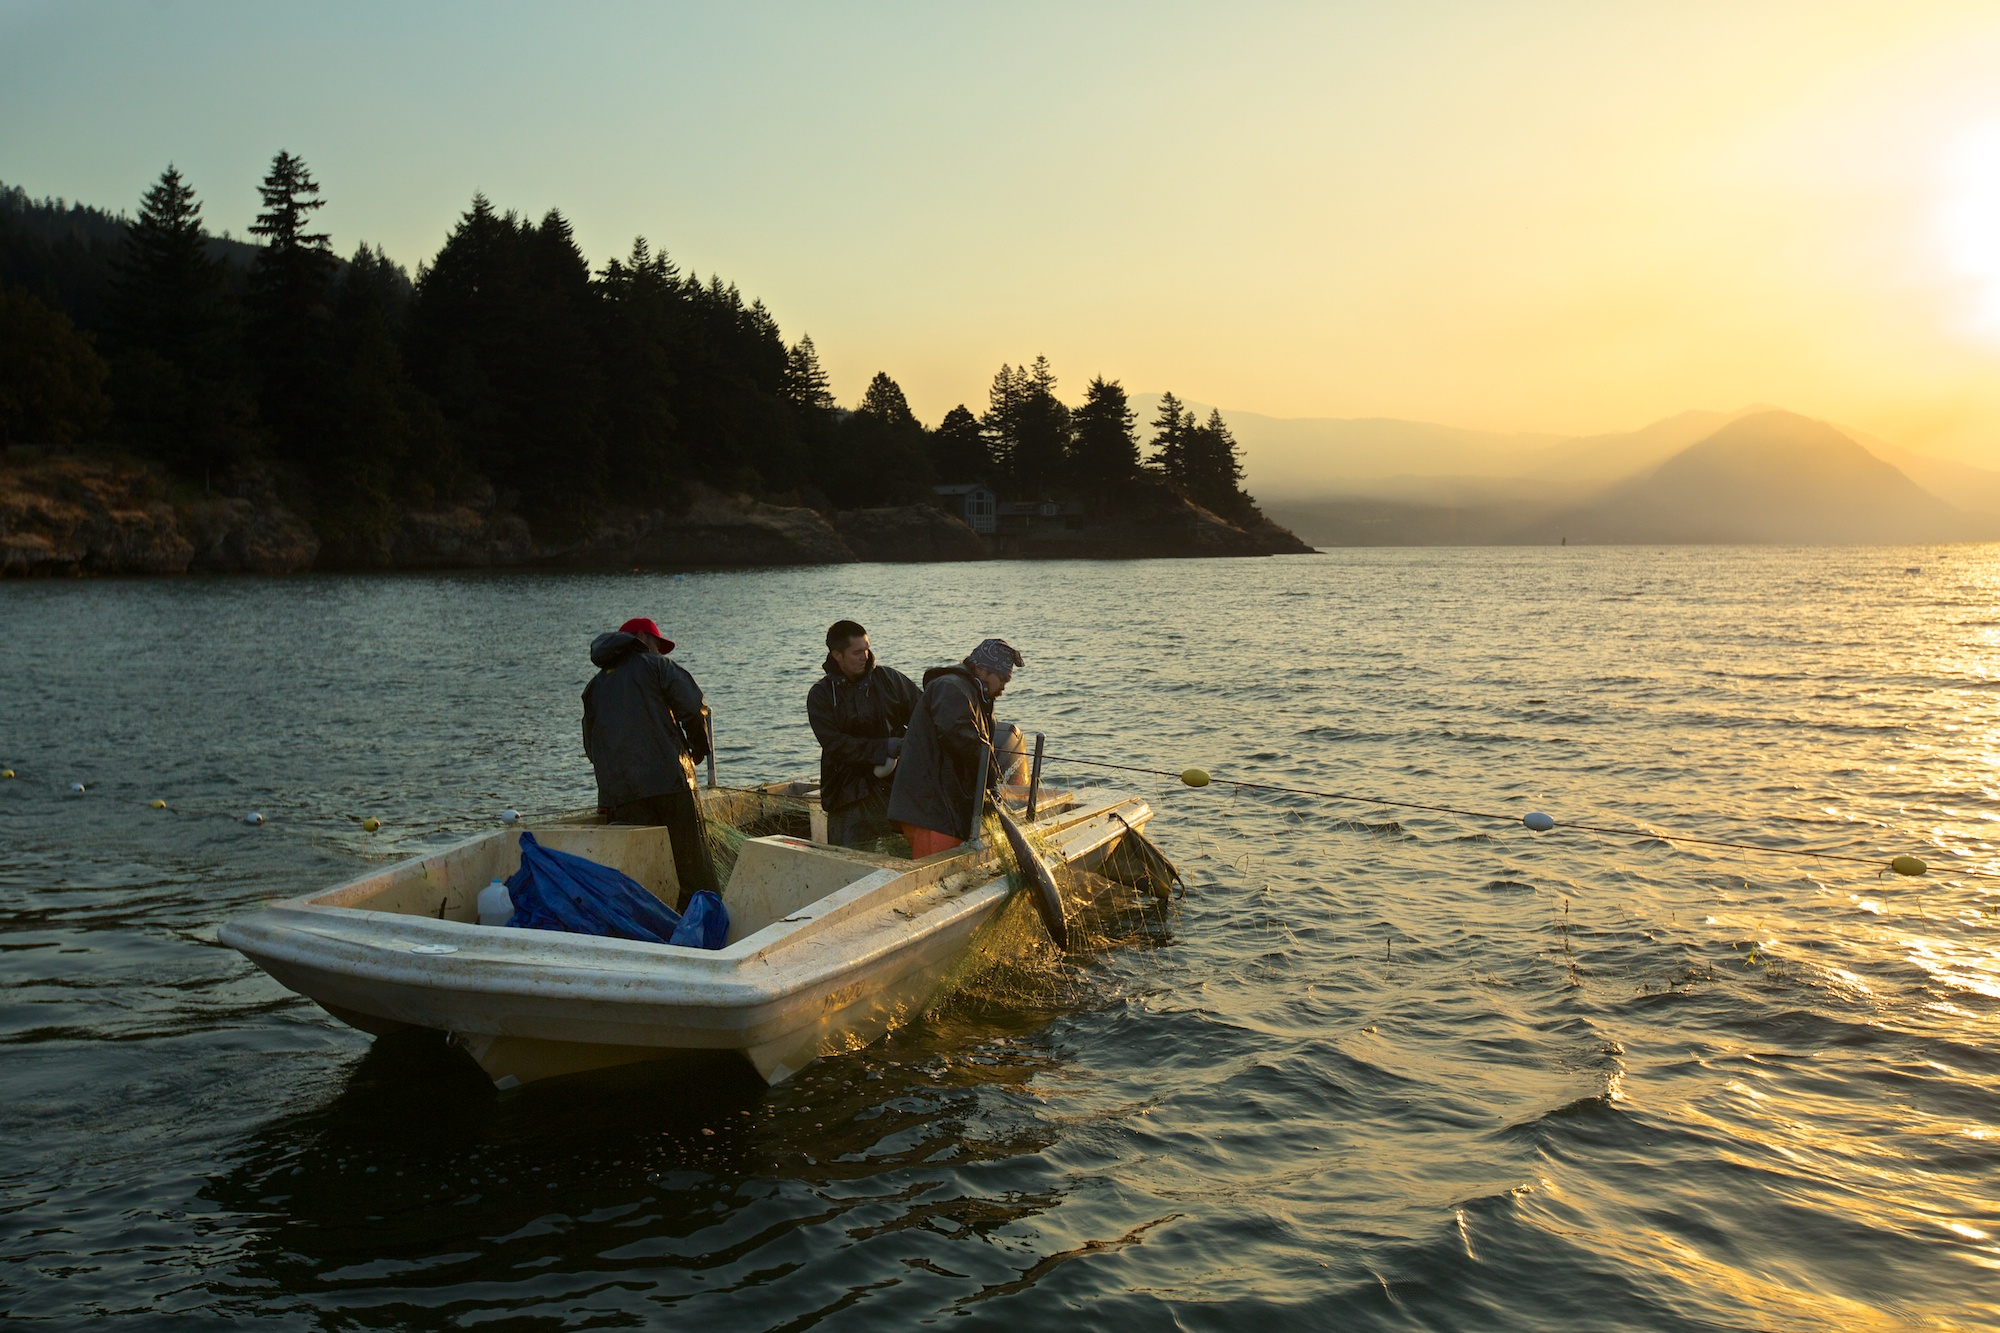 Gill-netting on the Columbia River. Thomas Boyd/The Oregonian